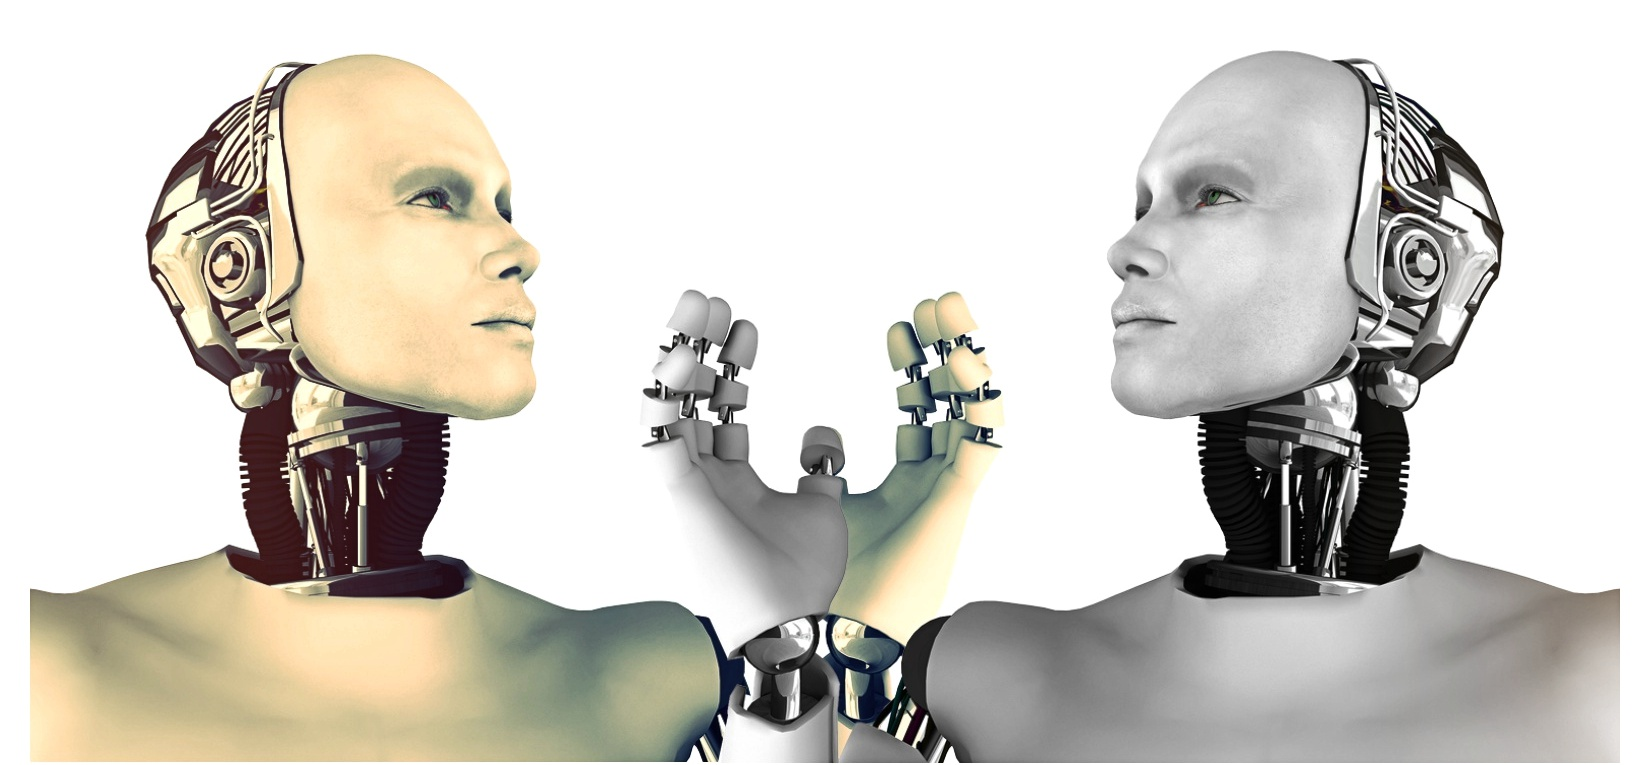 Scientists Working on Robots Equipped with Self-Cloning Capabilities